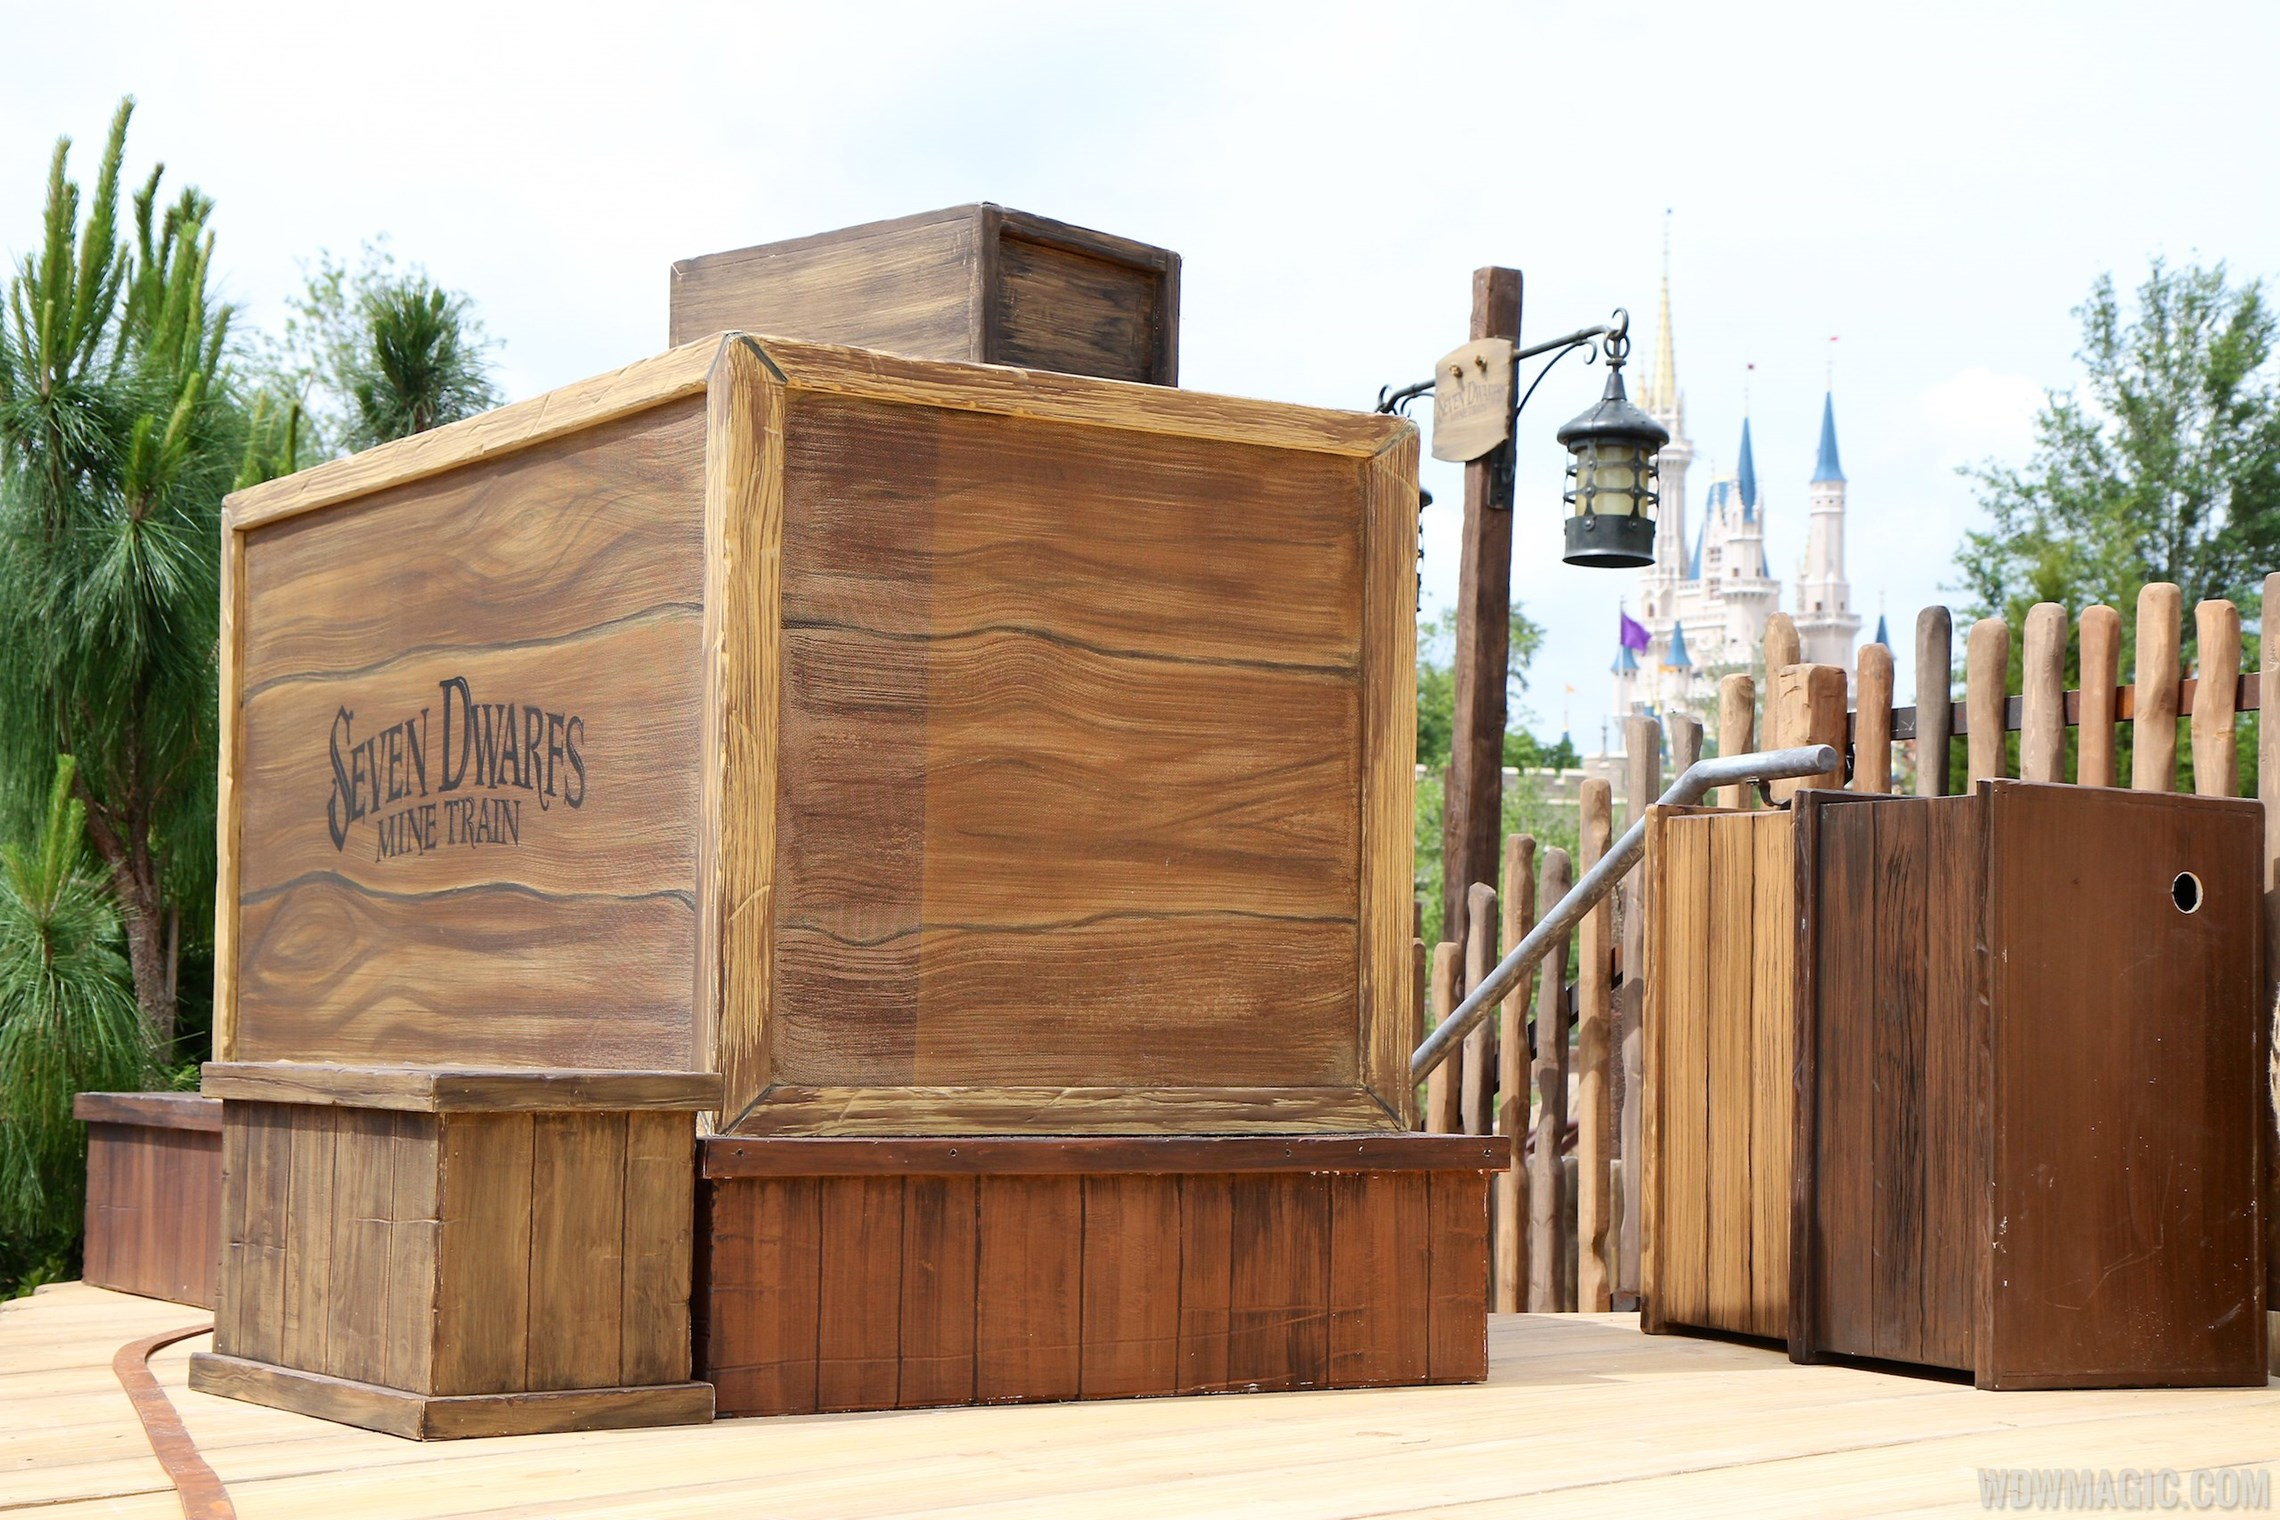 Seven Dwarfs Mine Train dedication ceremony stage setup